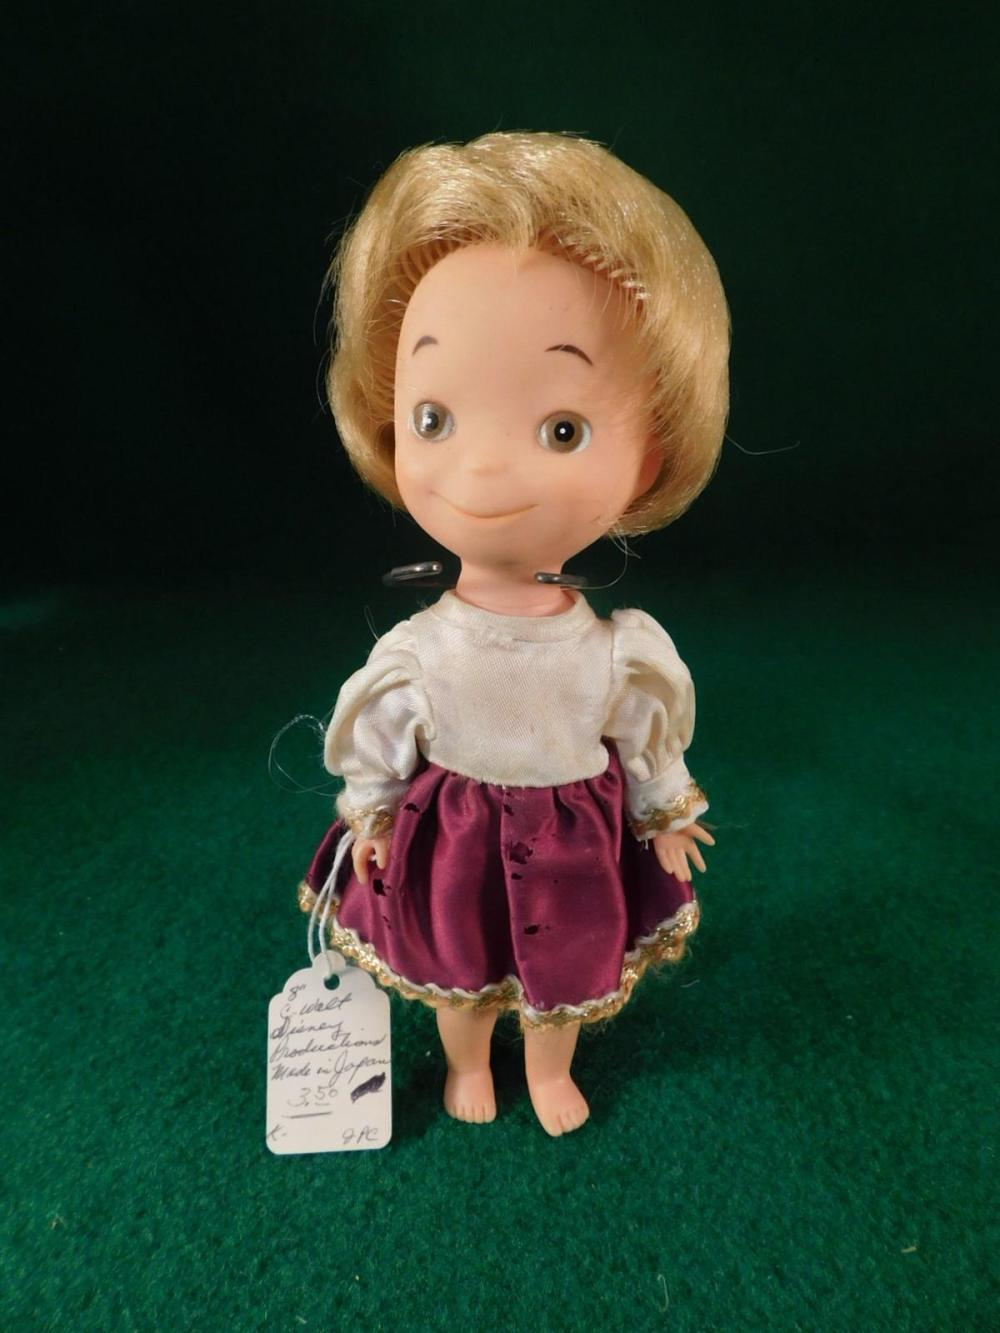 C. WALT DISNEY PRODUCTIONAL MADE IN JAPAN DOLL (YES, WE SHIP!)